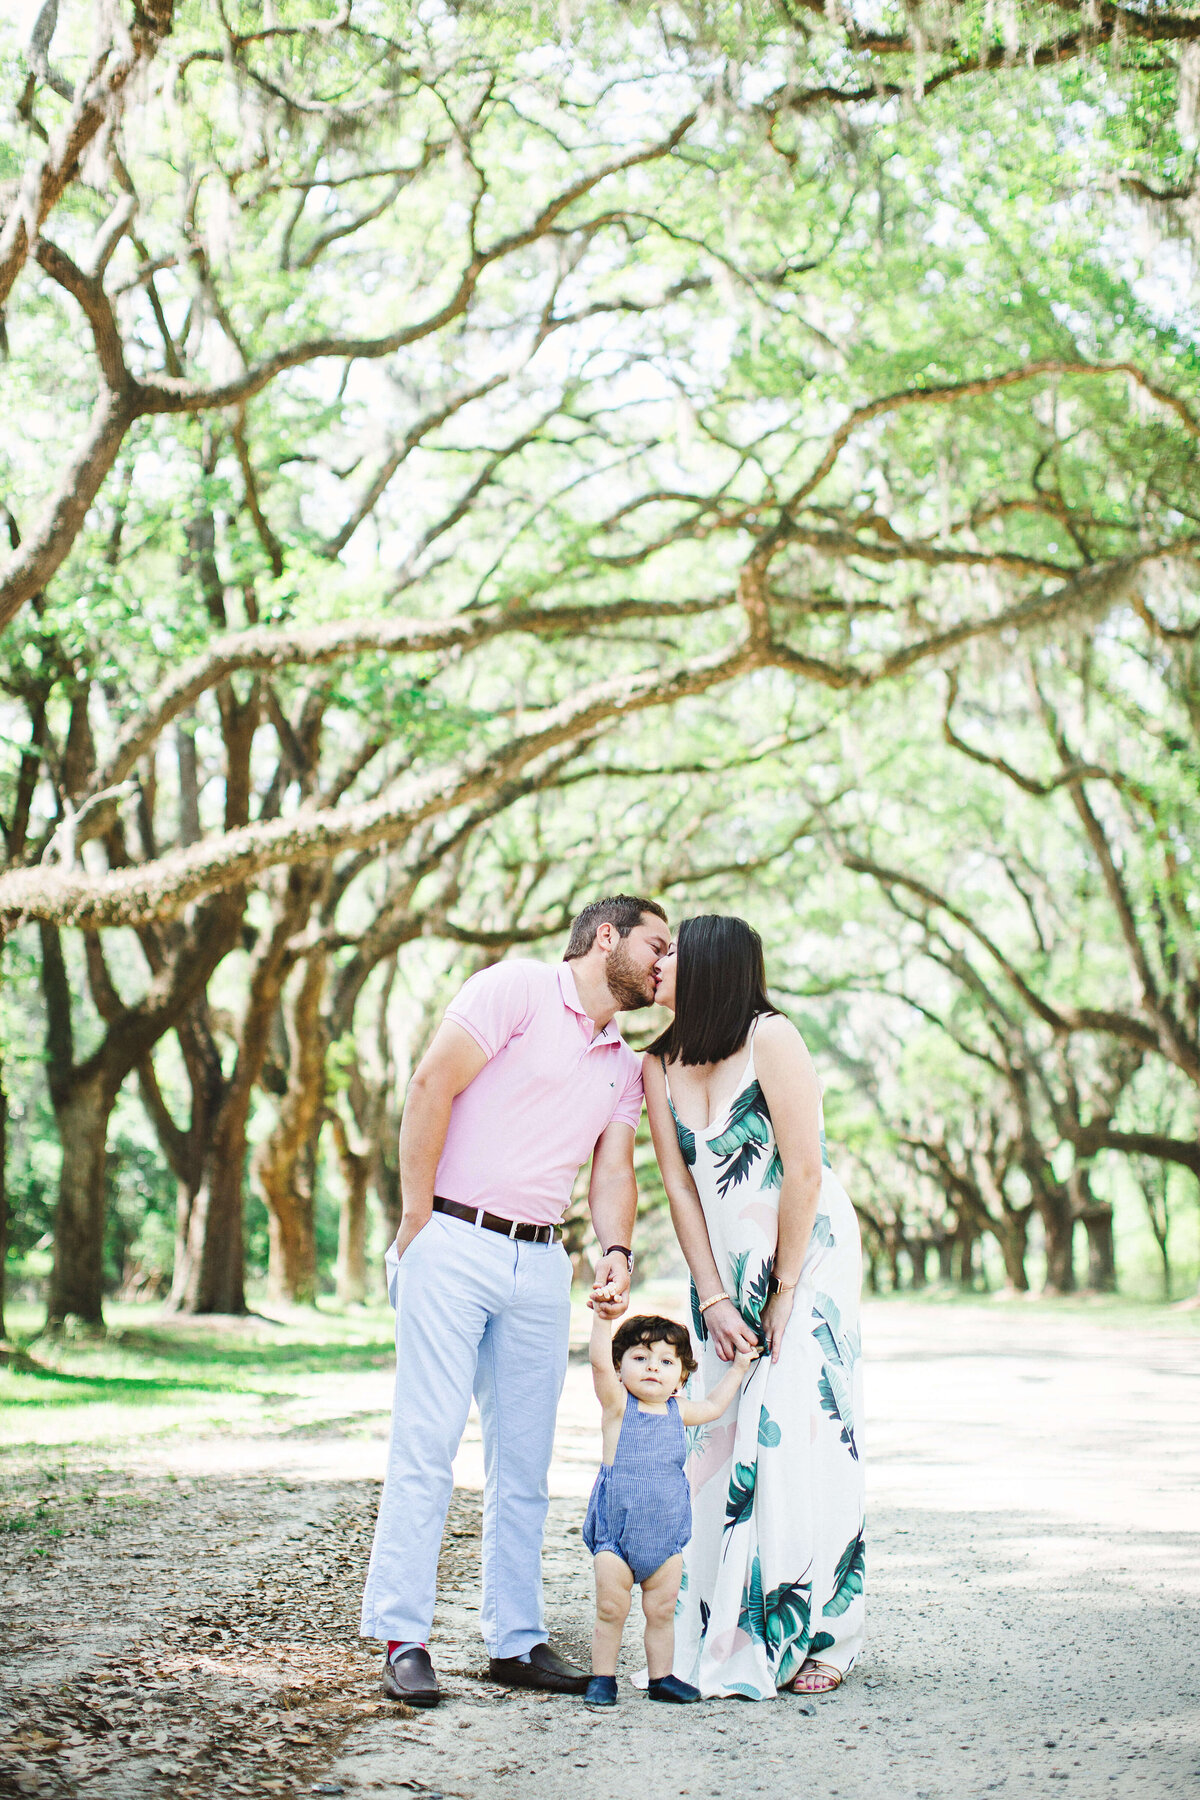 izzy-and-co-savannah-athens-atlanta-couples-family-lifestyle-photographer-10